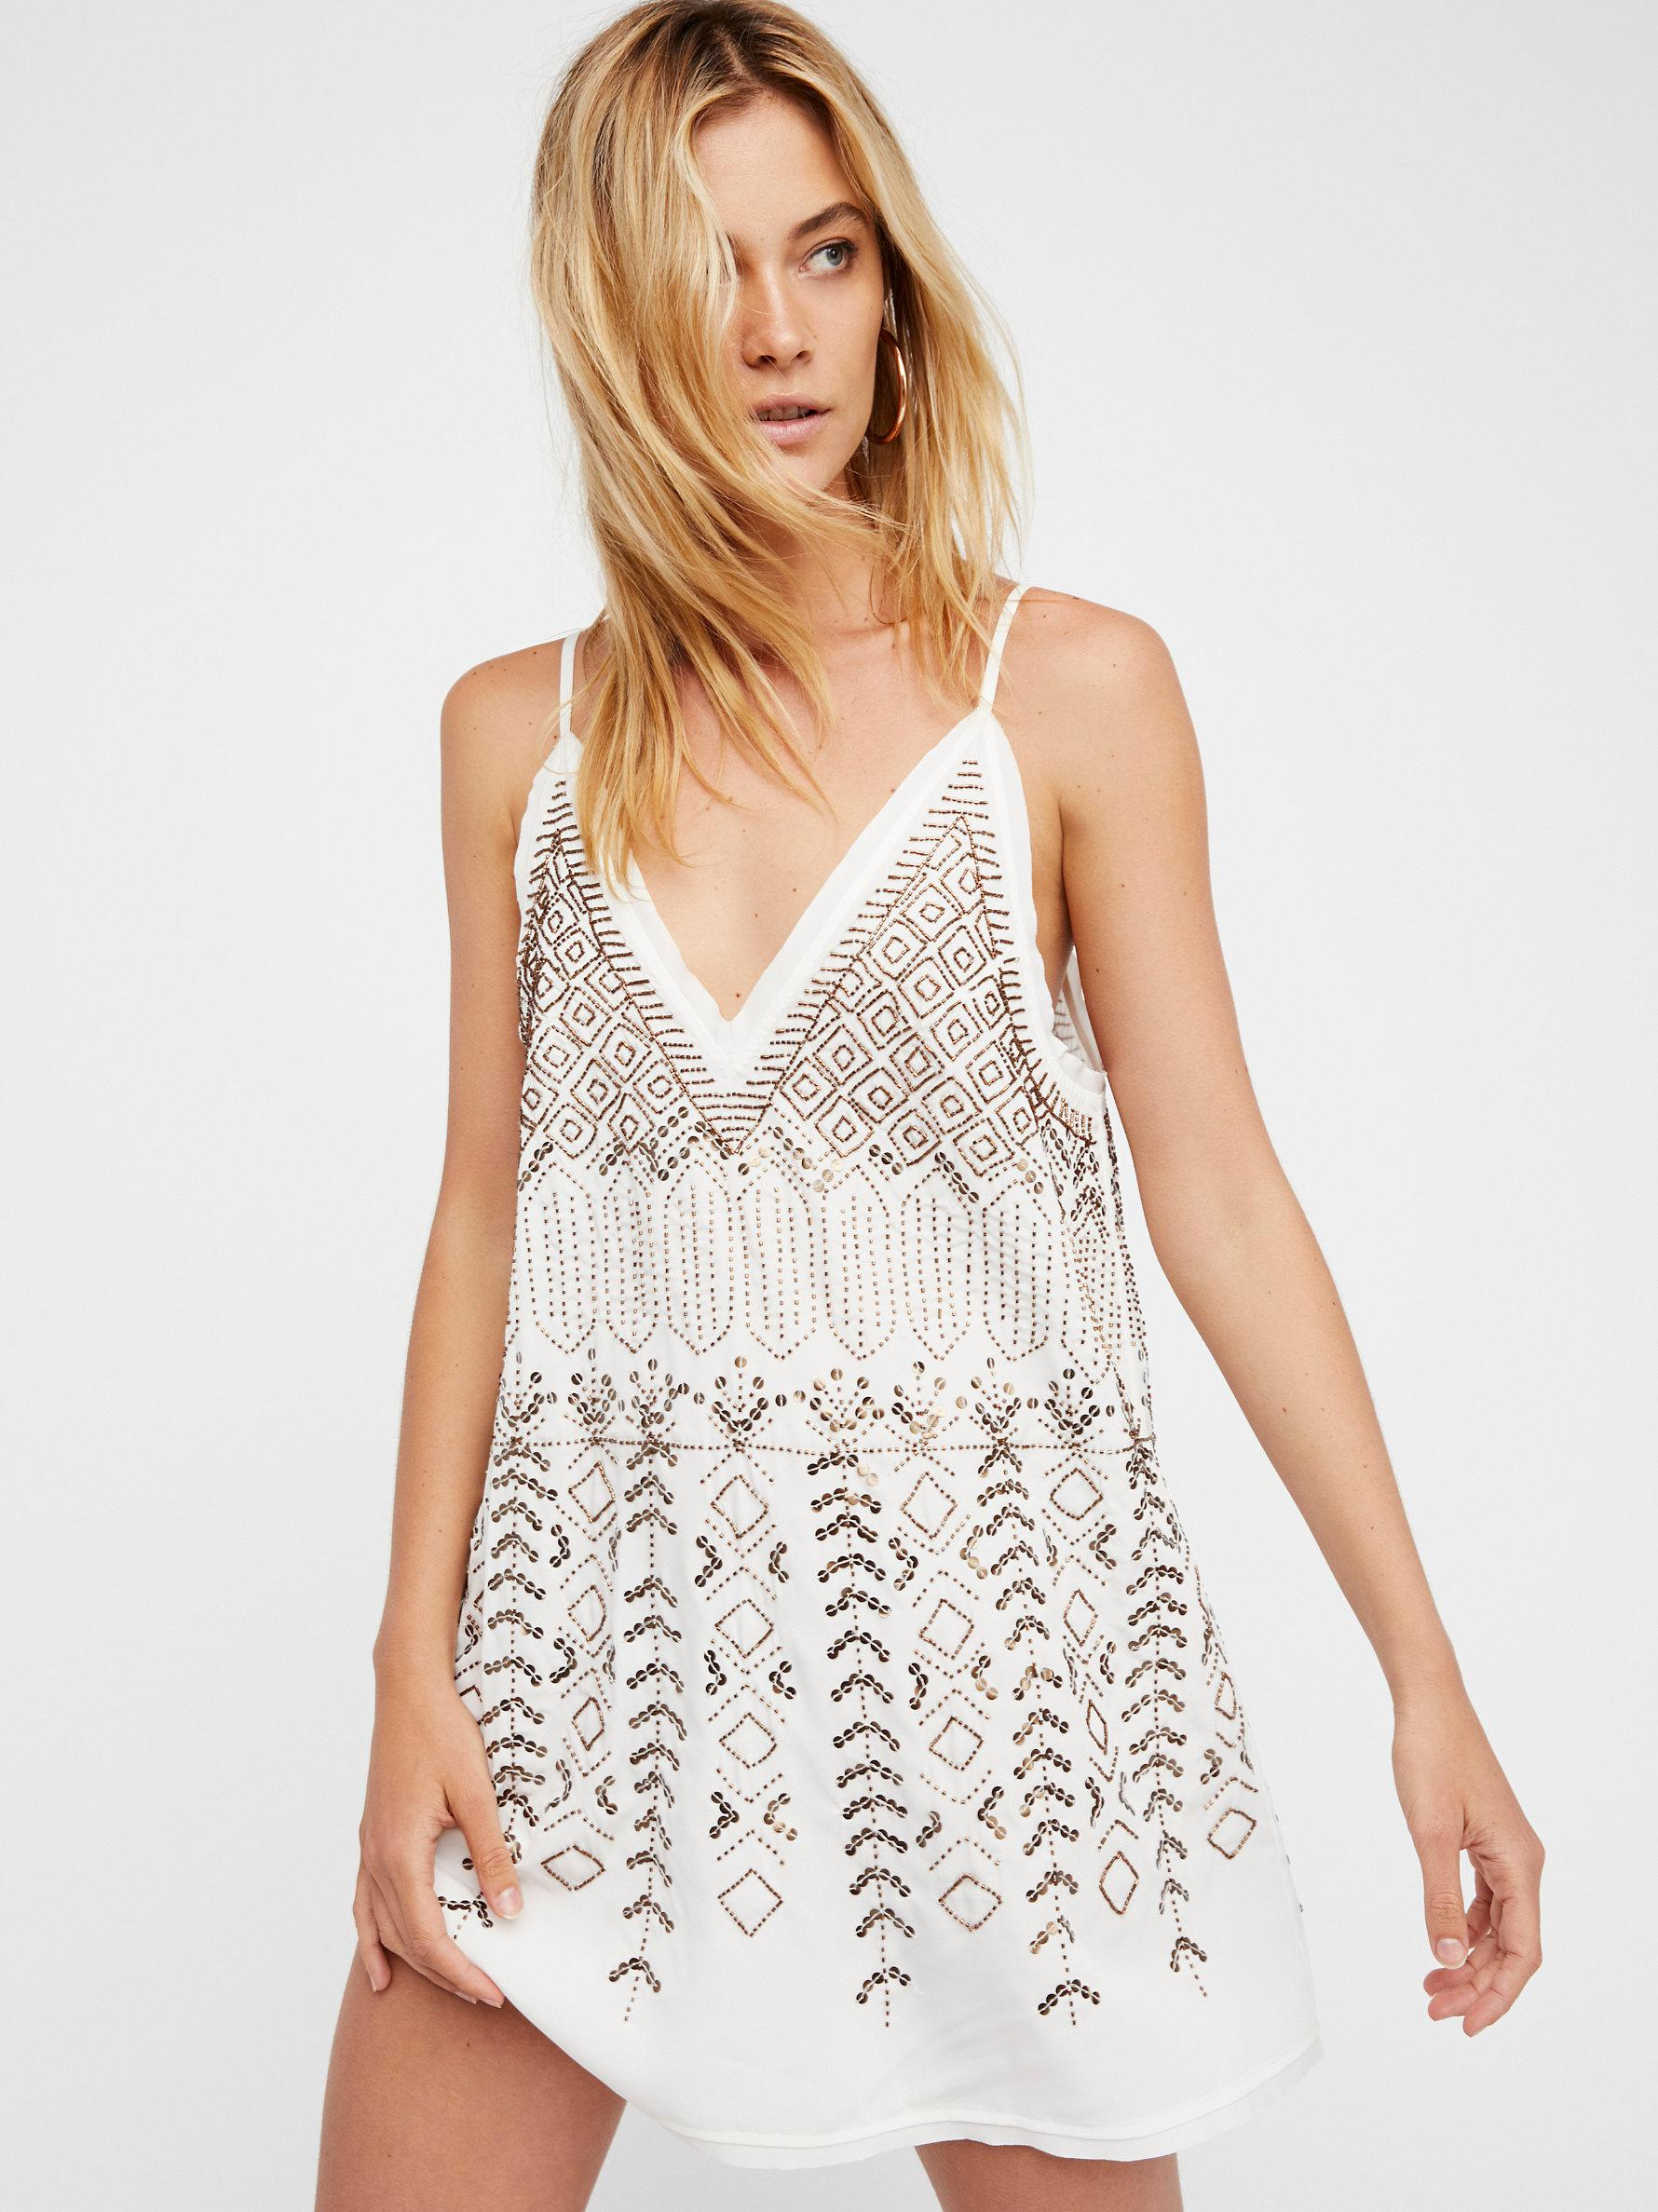 8bff903ad6b Free People Arizona Nights Embellished Slip in White - Lyst